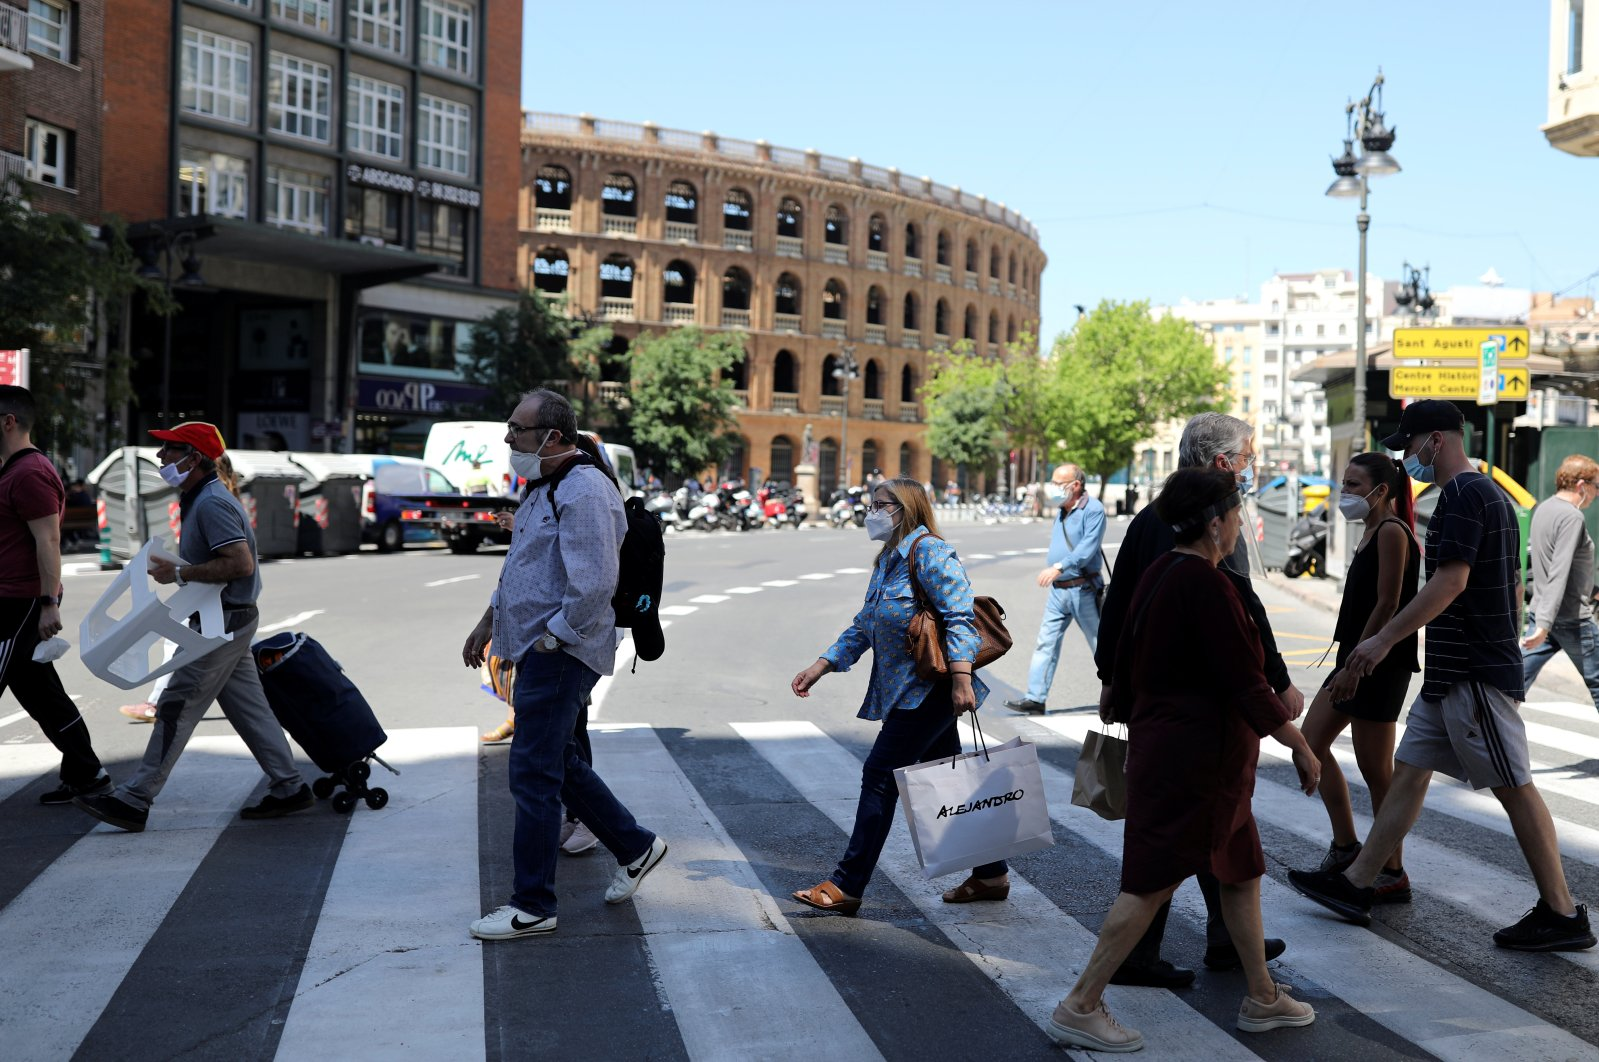 People wearing face masks walk on a crosswalk, as some Spanish provinces are allowed to ease lockdown restrictions during phase one, amid the coronavirus outbreak, in Valencia, Spain, May 19, 2020. (Reuters Photo)